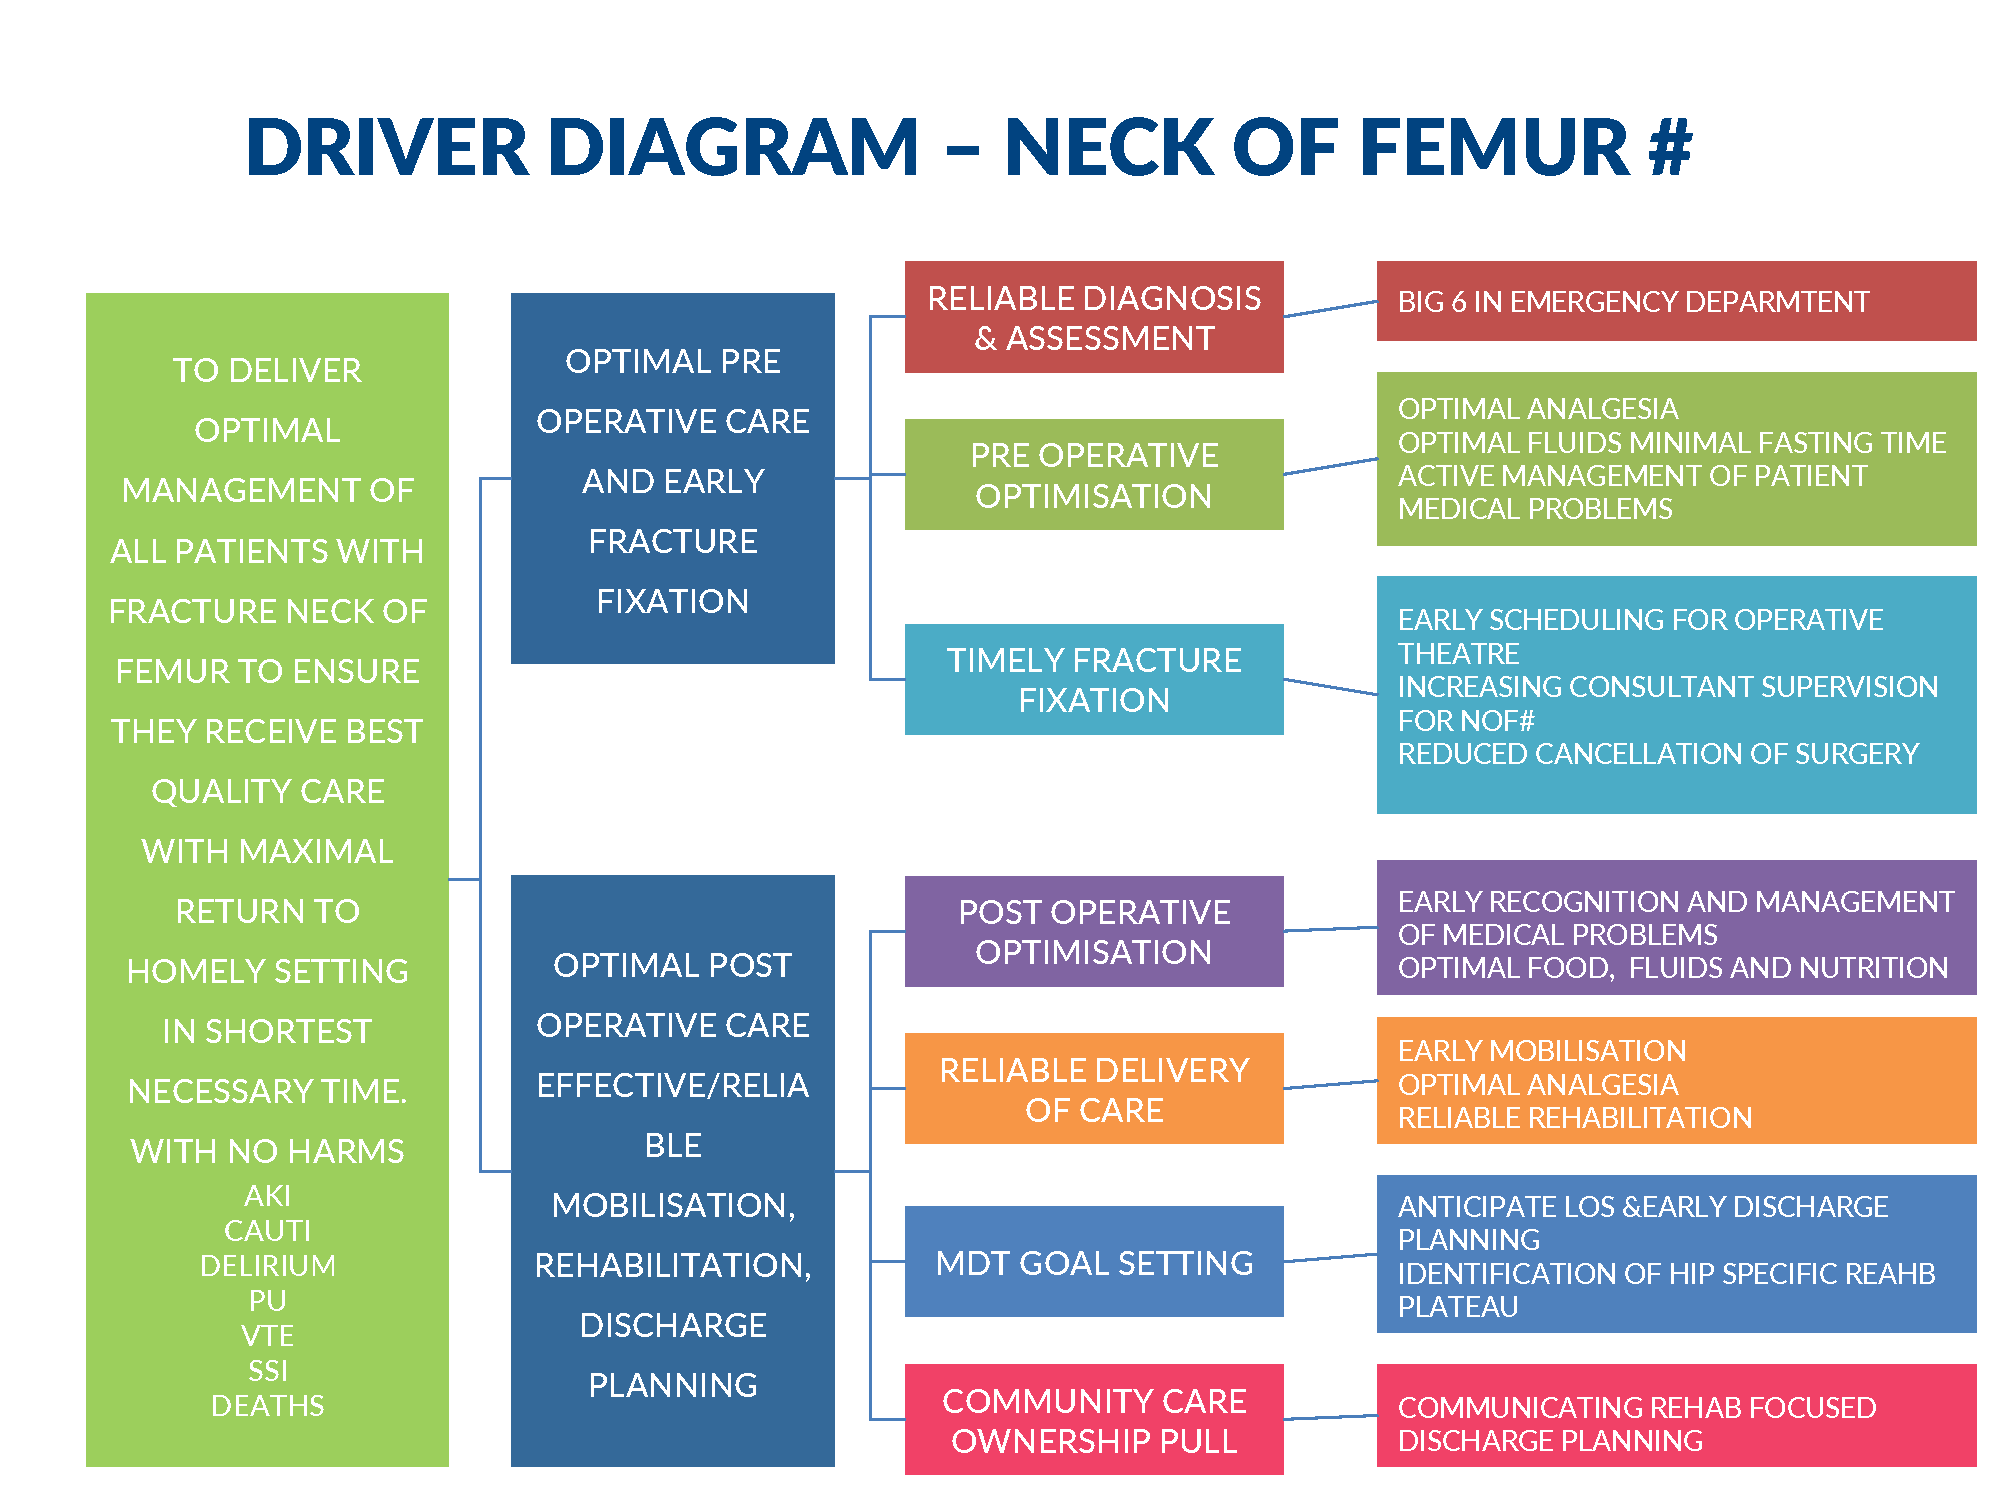 DRIVER DIAGRAM MODIFIED.png